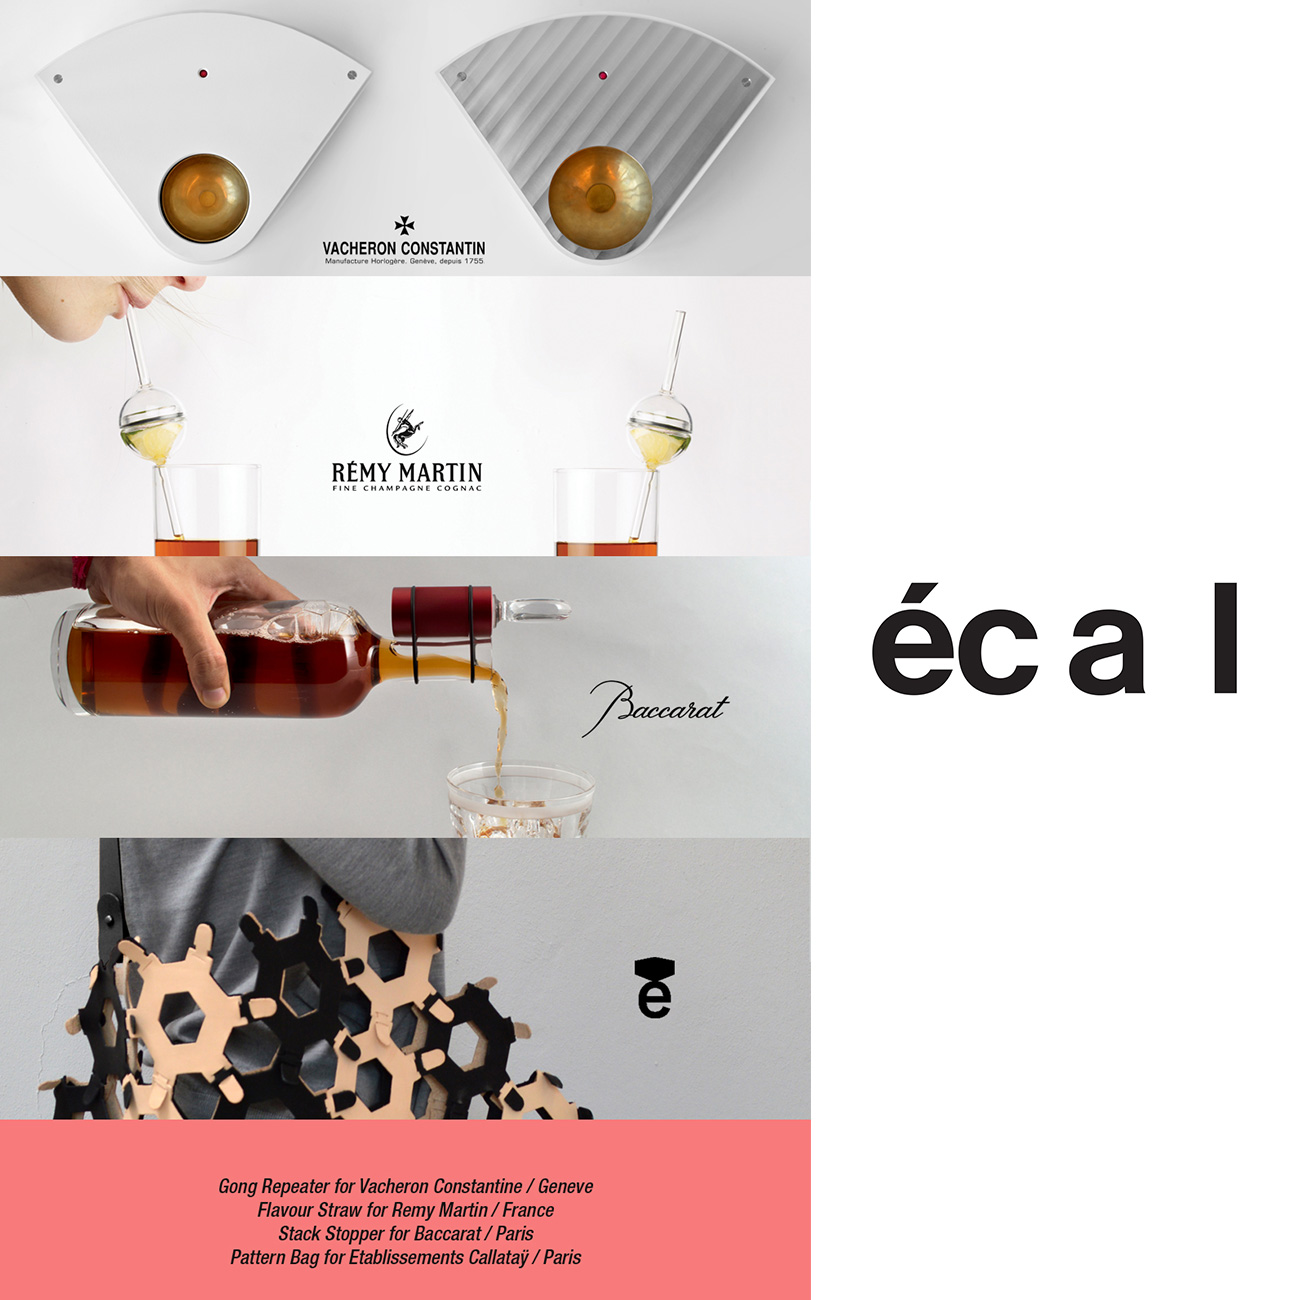 """Jordi Pla Studio presents four new products designed at Ecal during the """"Mas Luxe"""" for craftsman and luxurious companies like: Vacheron Constantin from Geneve. Baccarat from Paris, Remy Martin from France and Etablissements Calataÿ from Paris."""